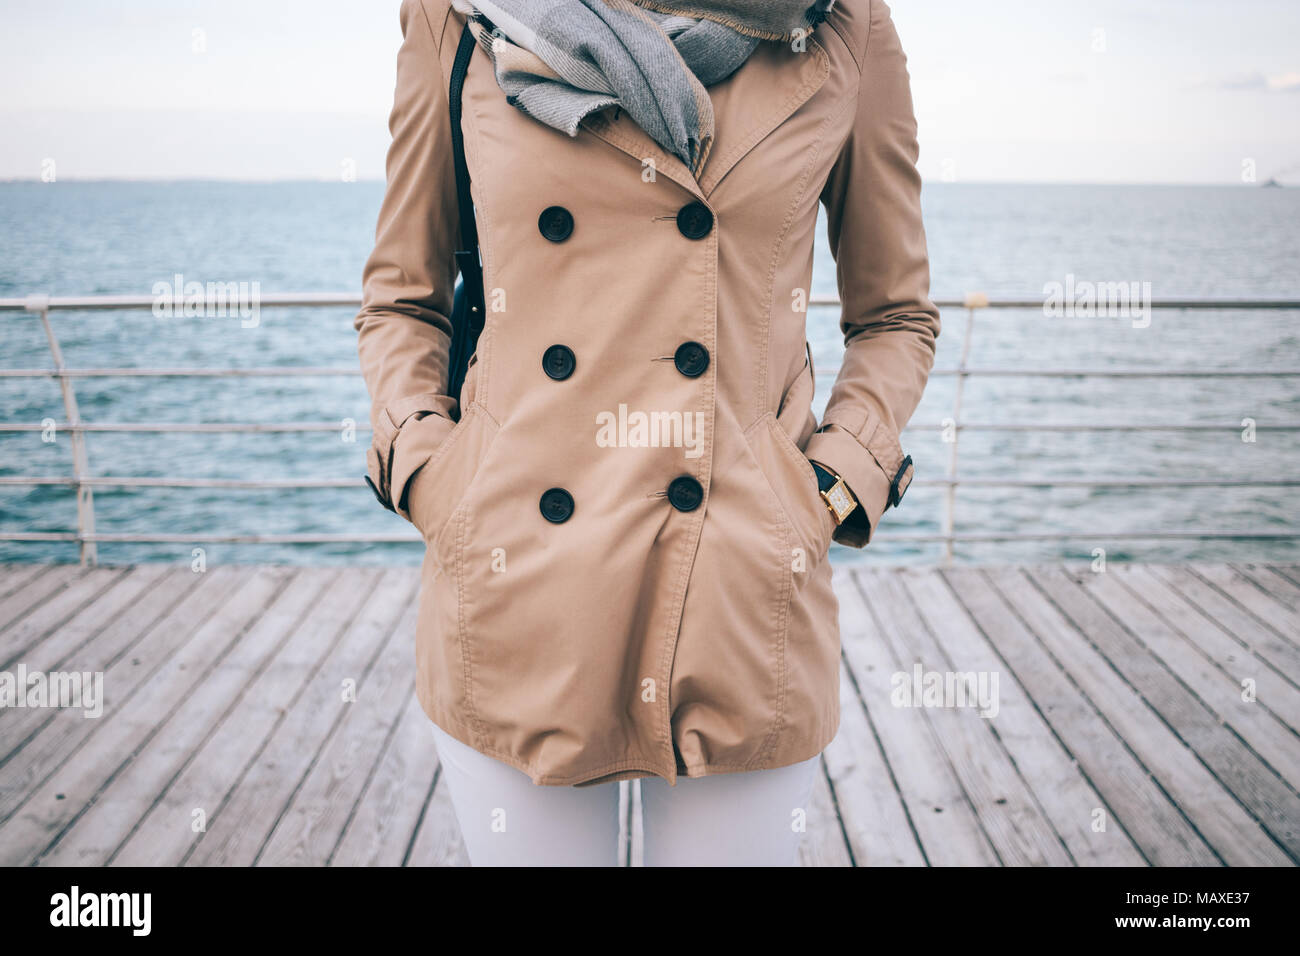 Spring marine outfit. Fashionable girl standing on the waterfront. Cropped photo of slender young woman wearing beige trench coat, large scarf and gol - Stock Image